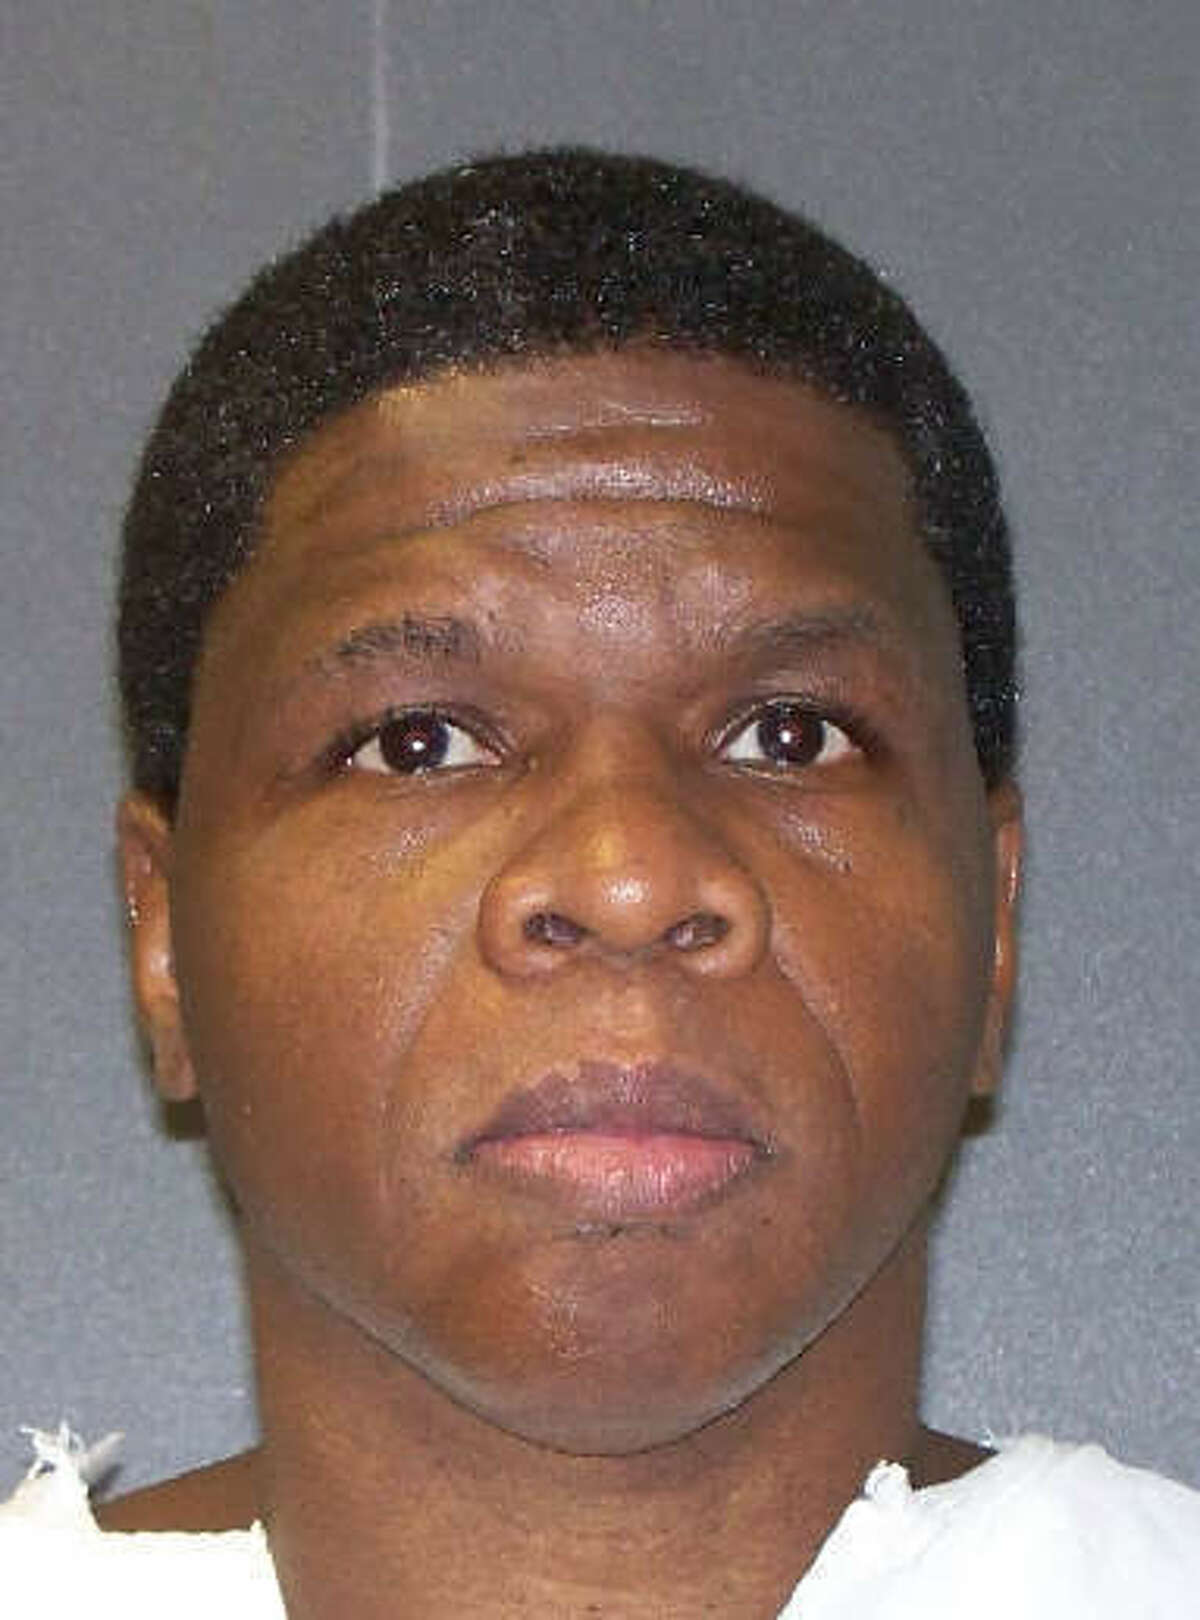 This undated photo provided by the Texas Department of Criminal Justice shows death row inmate Duane Buck. The Supreme Court has ordered a new court hearing for Texas prison inmate Buck who claims improper testimony about his race tainted his death sentence. (Texas Department of Criminal Justice via AP)